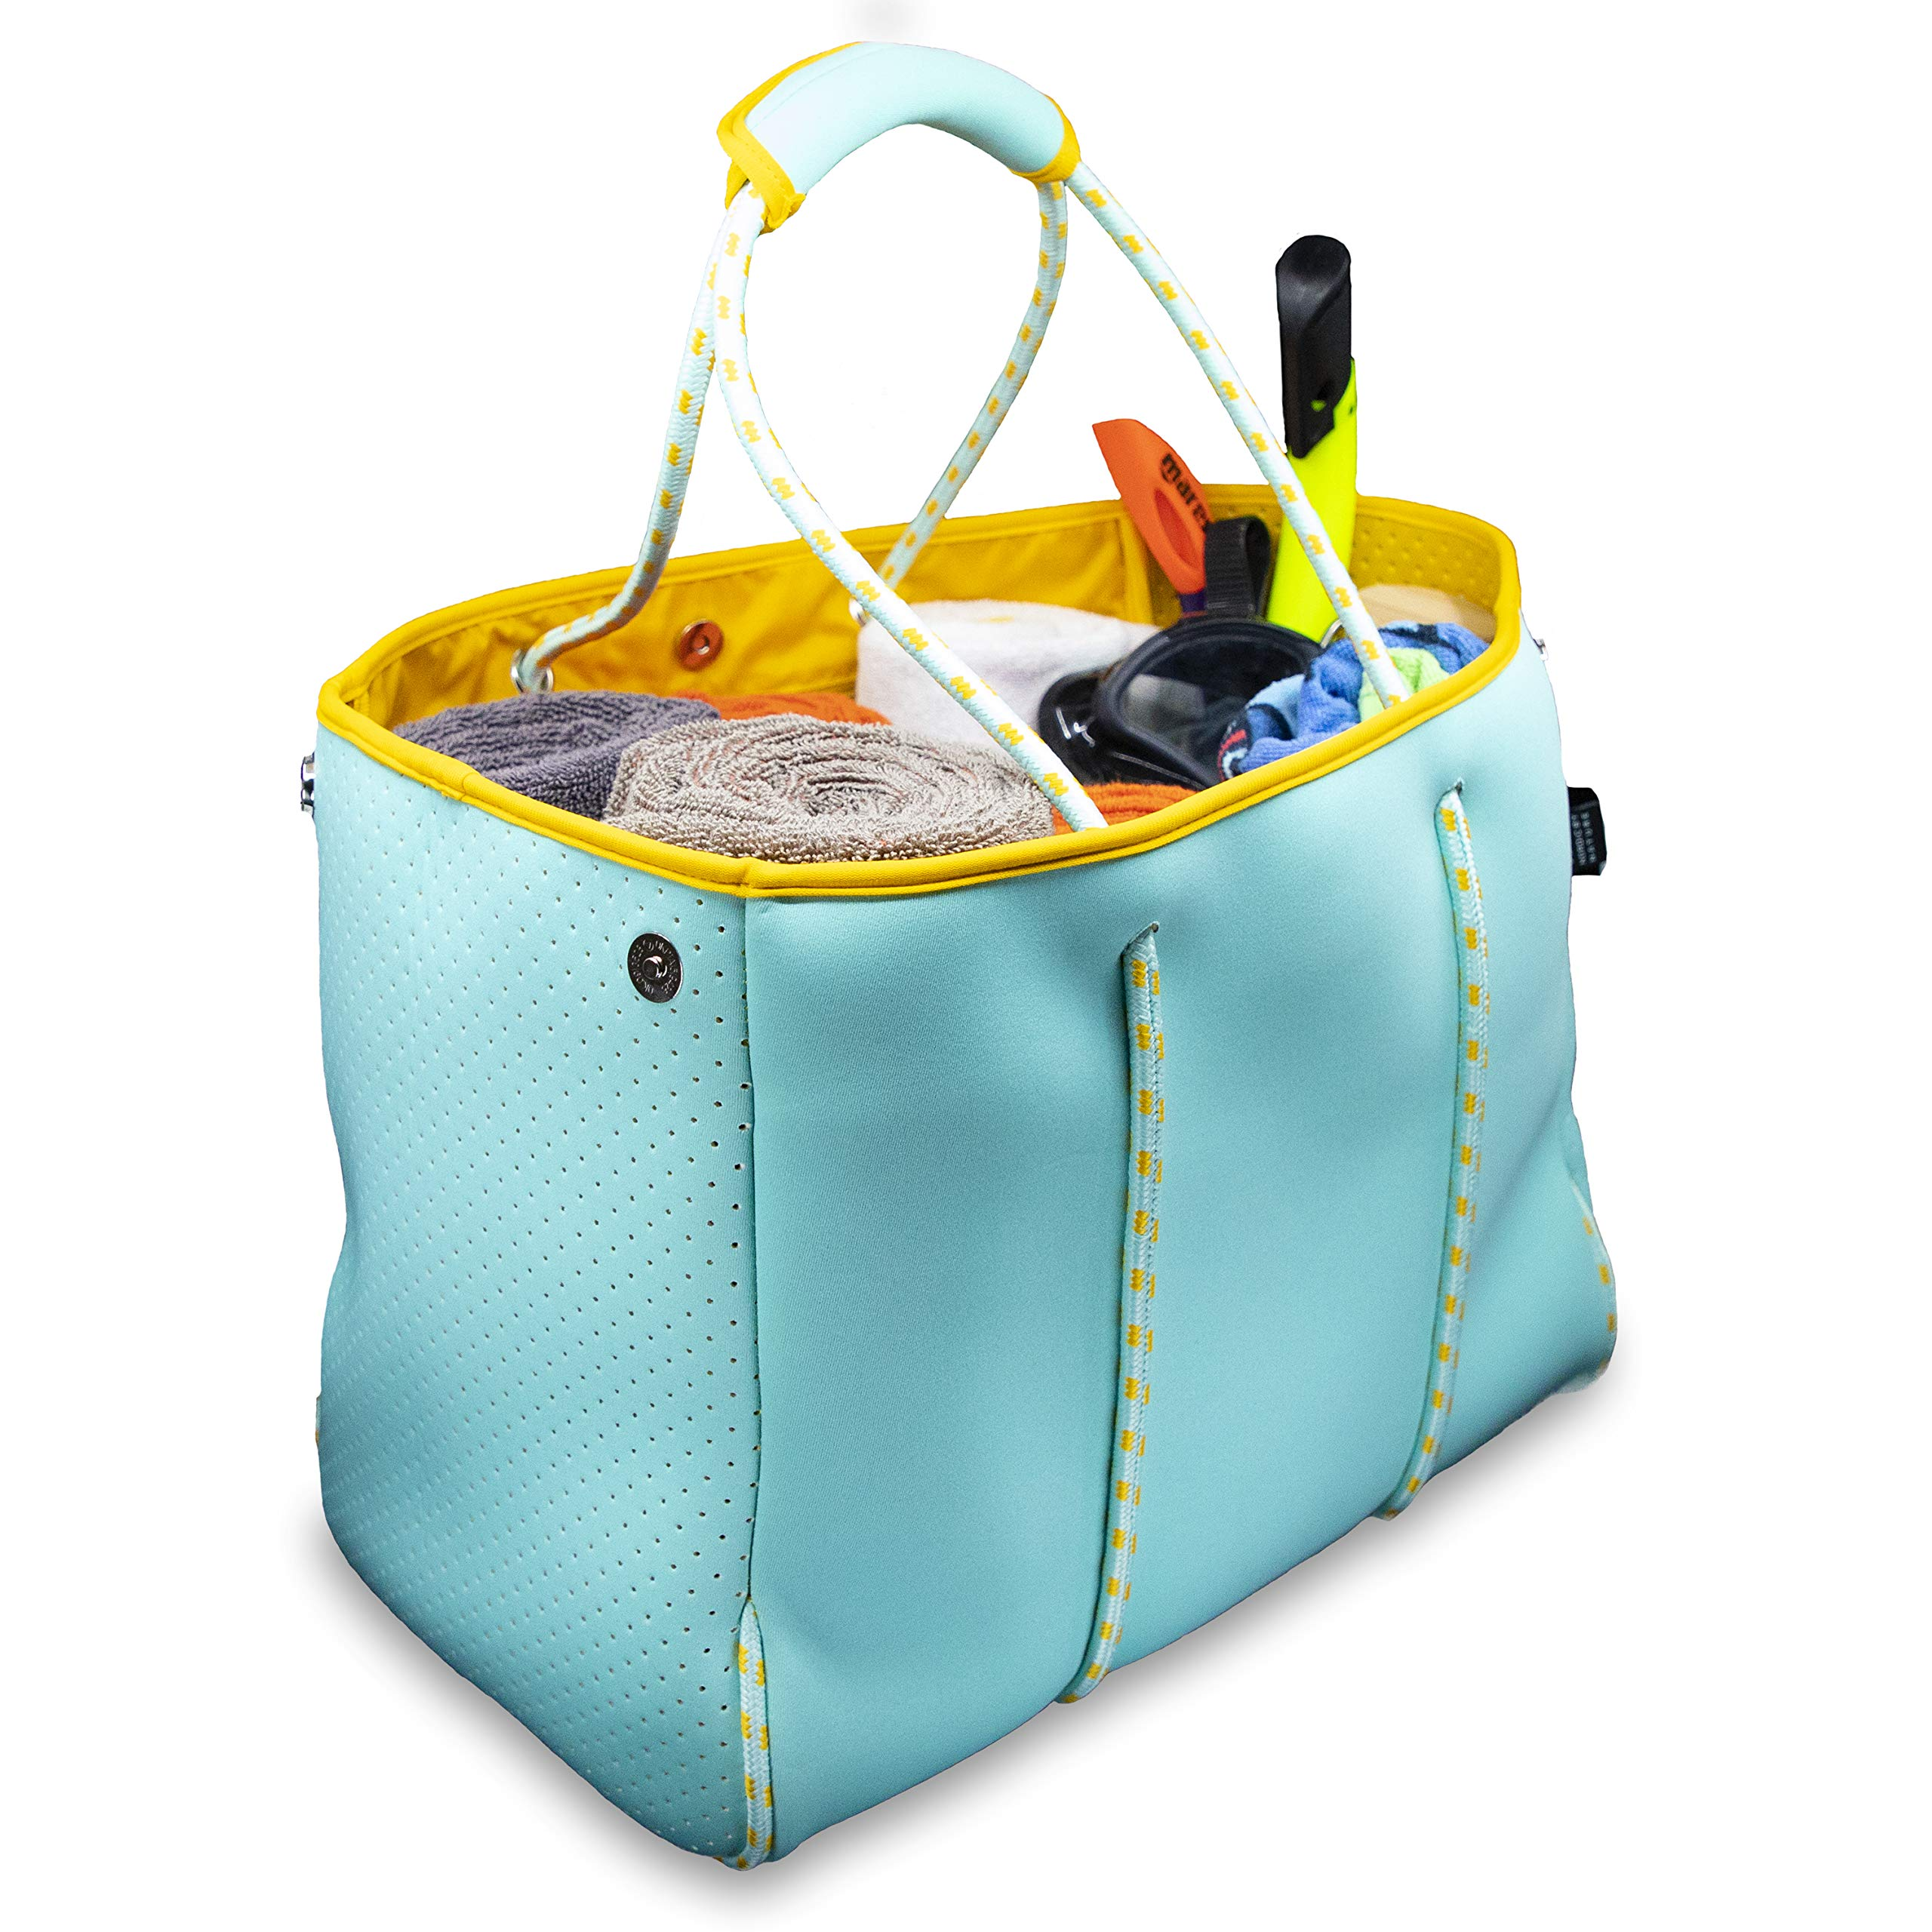 Nordic By Nature Large Designer Beach Bag Tote For Women, Men And Kids | Versatile Pool Bag With Zippered Pockets | Room For Towels, Toys And Lotion | For The Boat, Beach or Pool (Turquoise/Yellow)